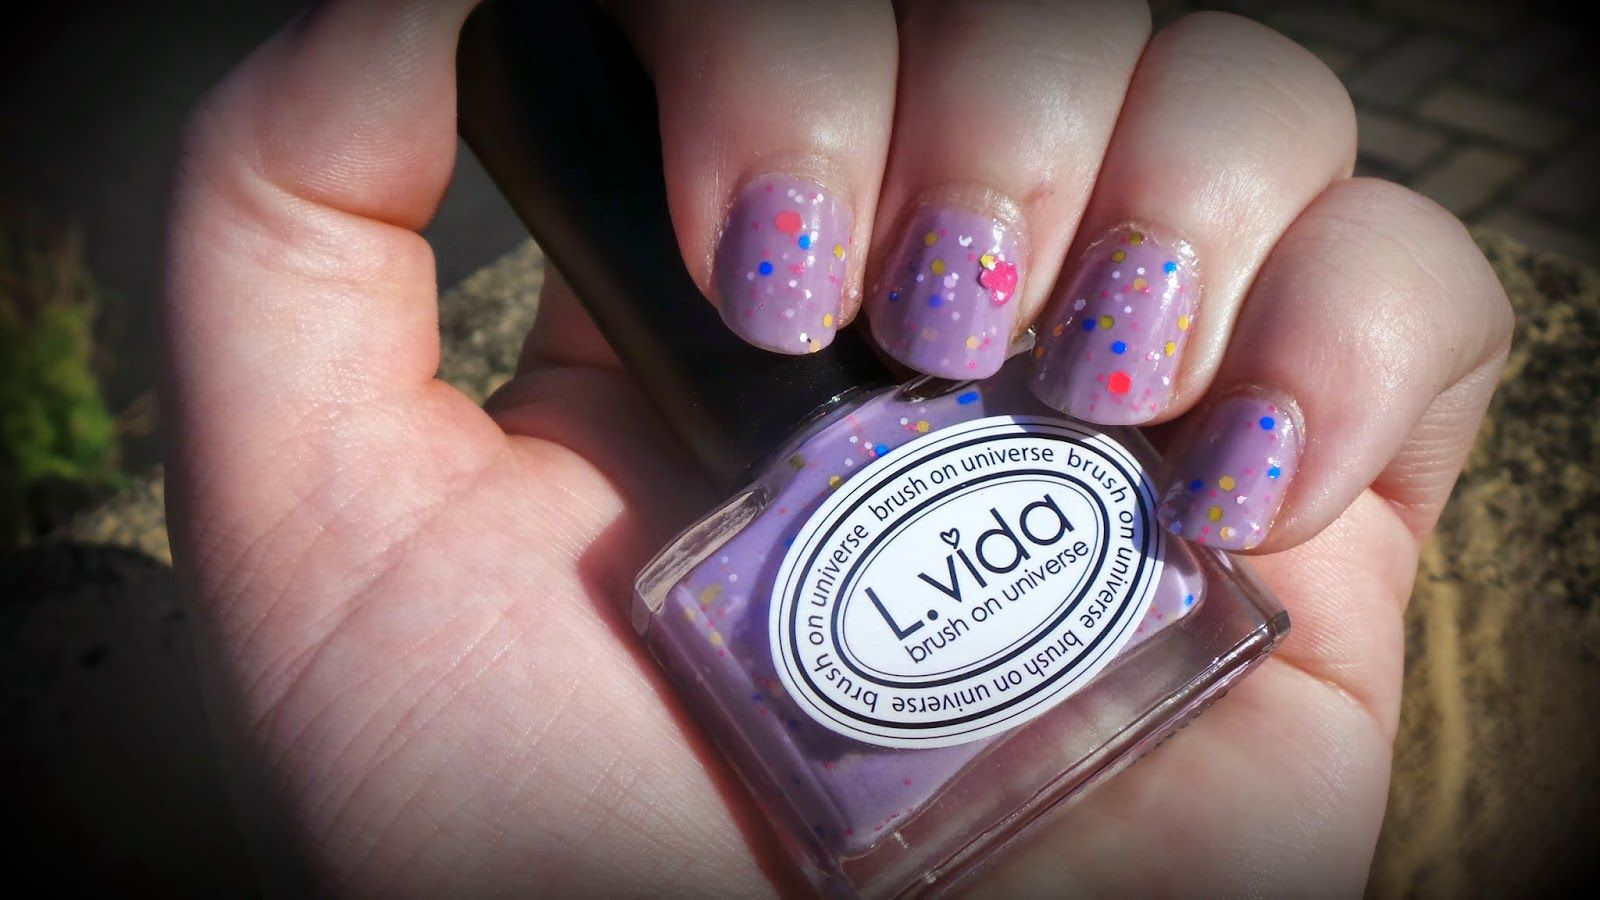 L Vida Korean Brand Nail Polish In Sweet Dream Lilac With Pink Hearts And Different Sized Multi Coloured Glitter Nail Polish Korean Nails Nails